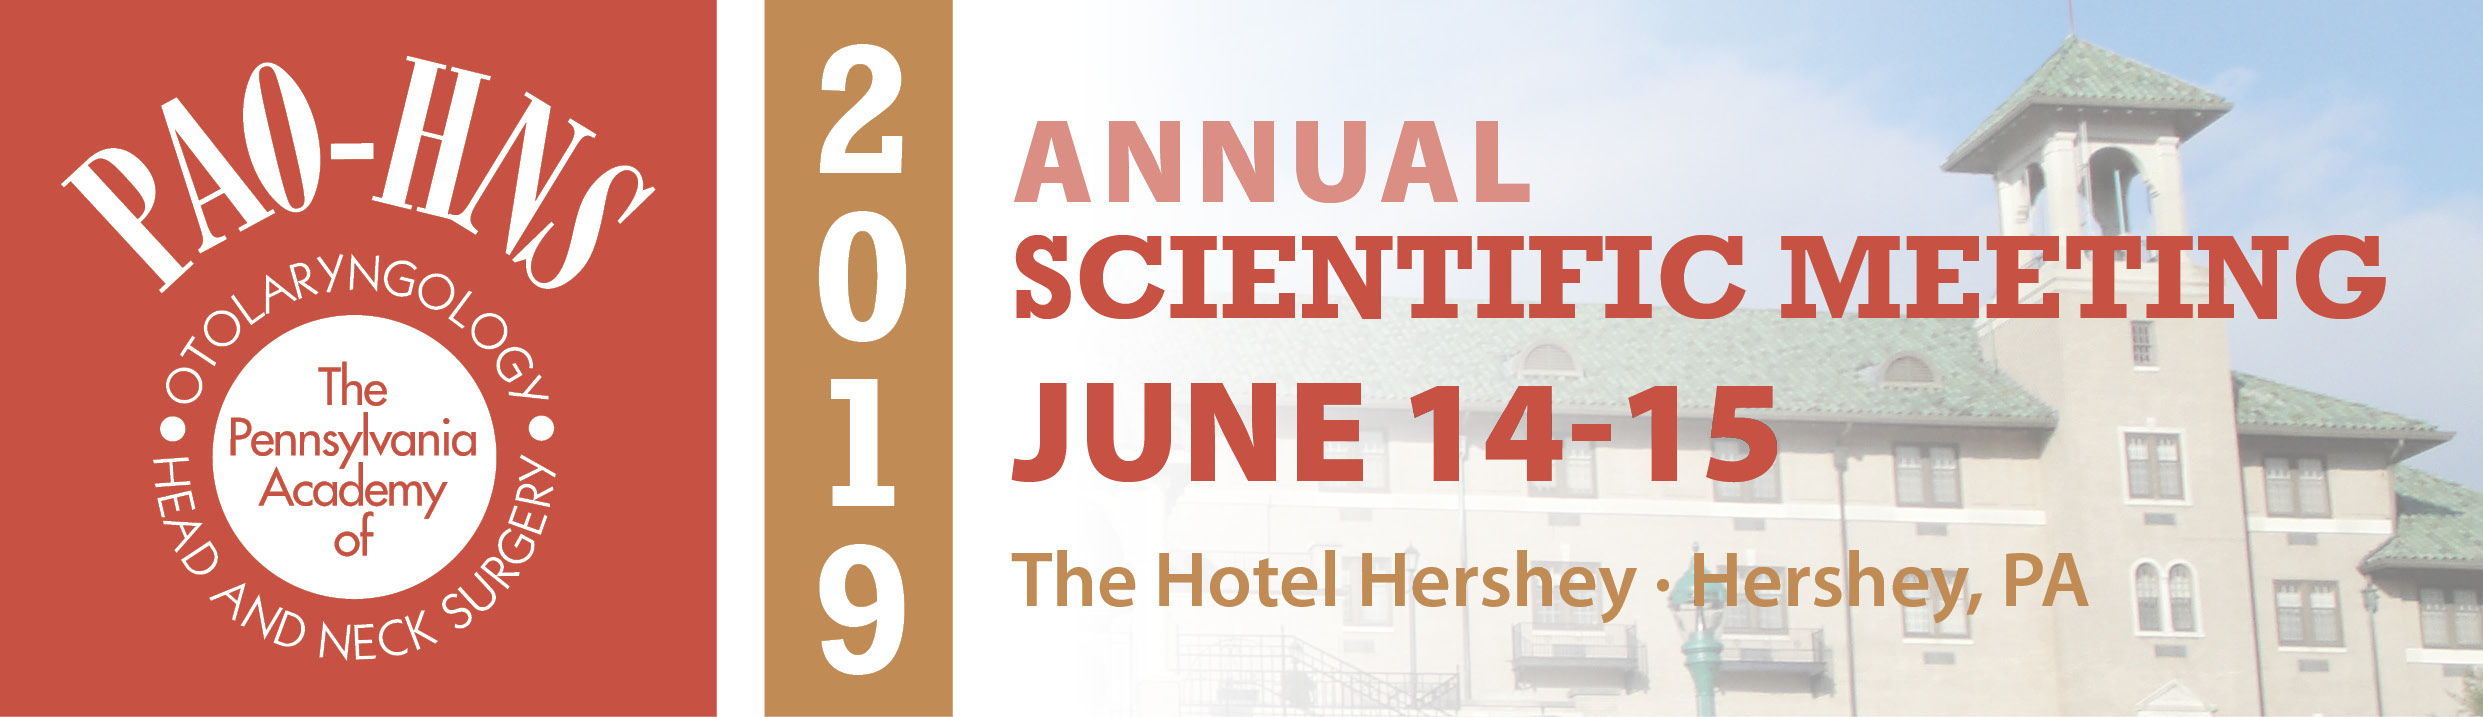 PAO-HNS 2019 Annual Scientific Meeting